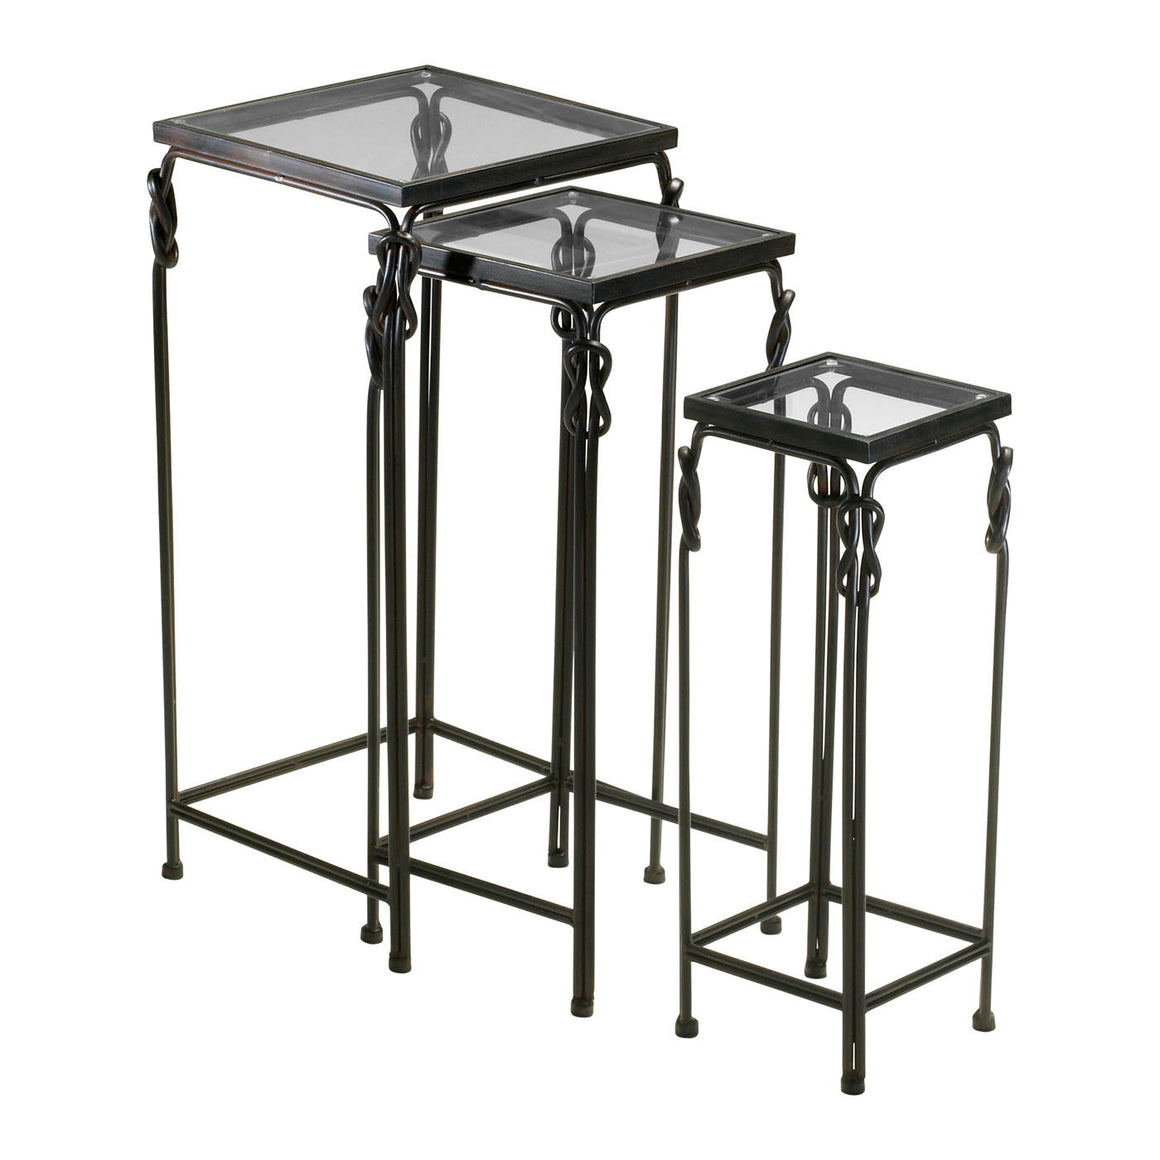 Dupont Nesting Tables 04311 by Cyan Design